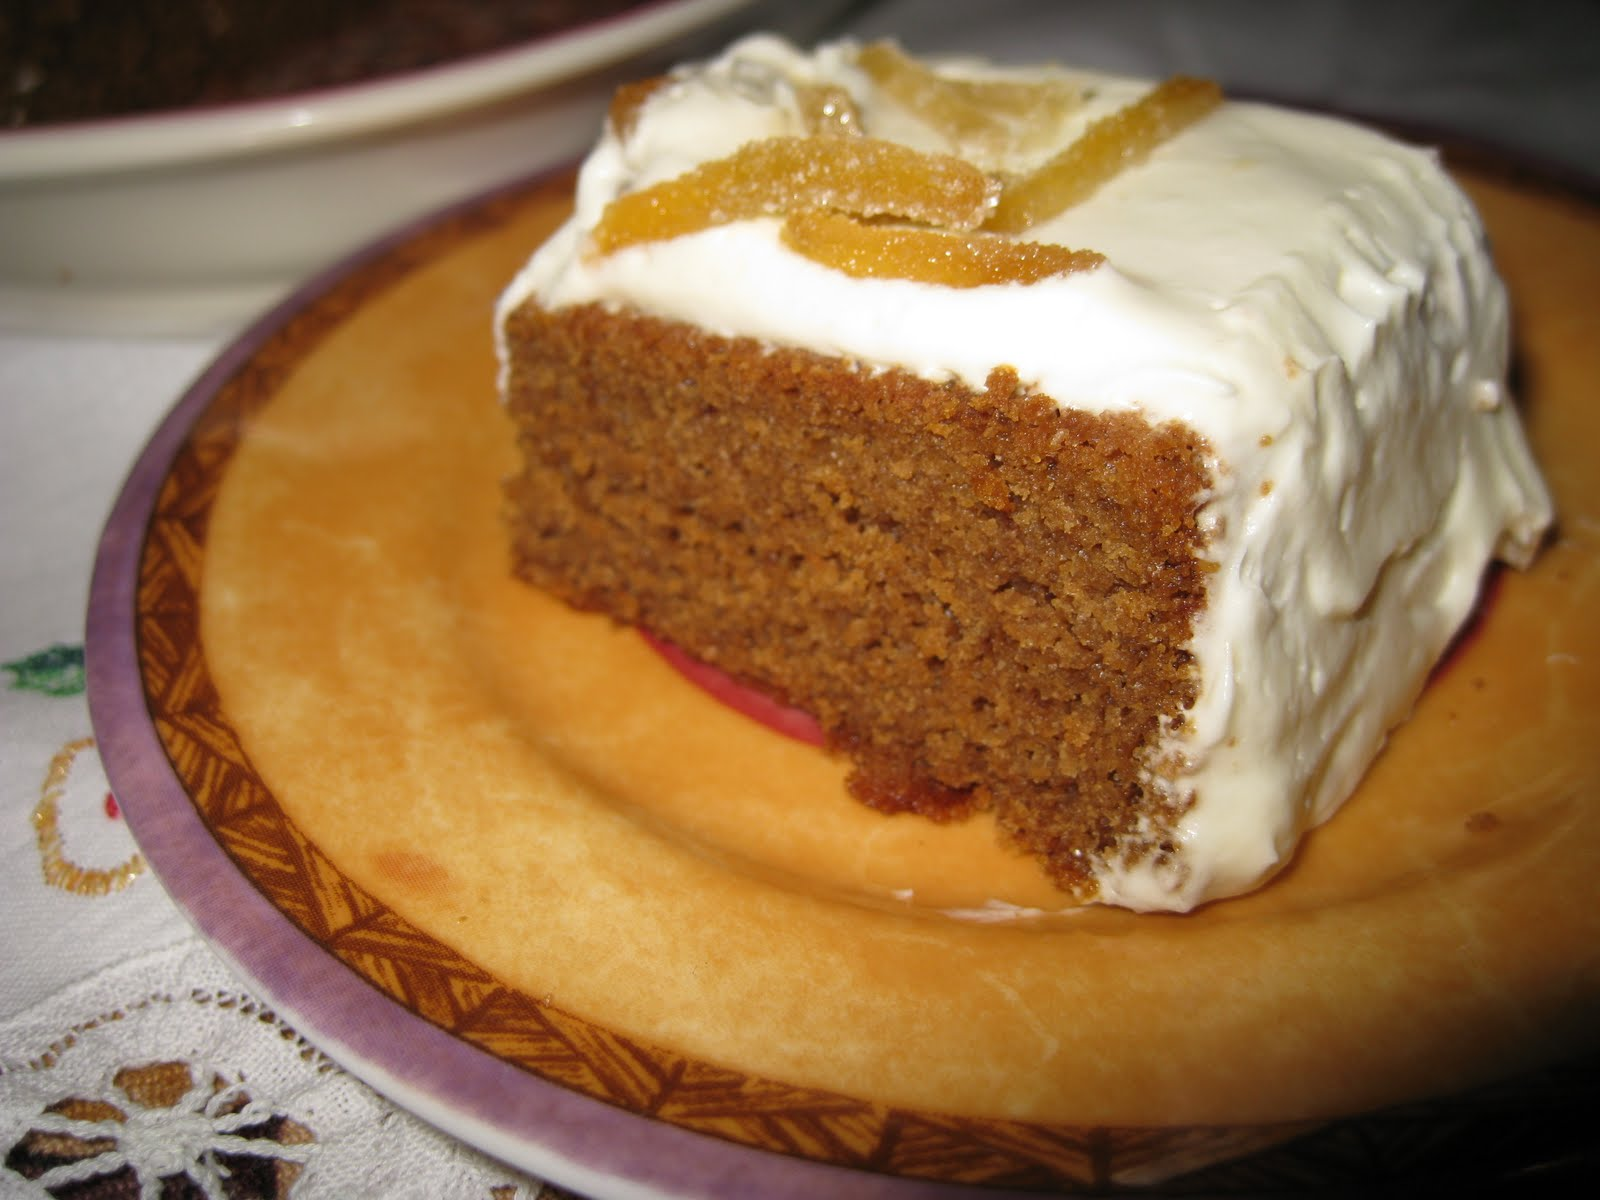 Healthy Foodies: Gingerbread cake for Mom